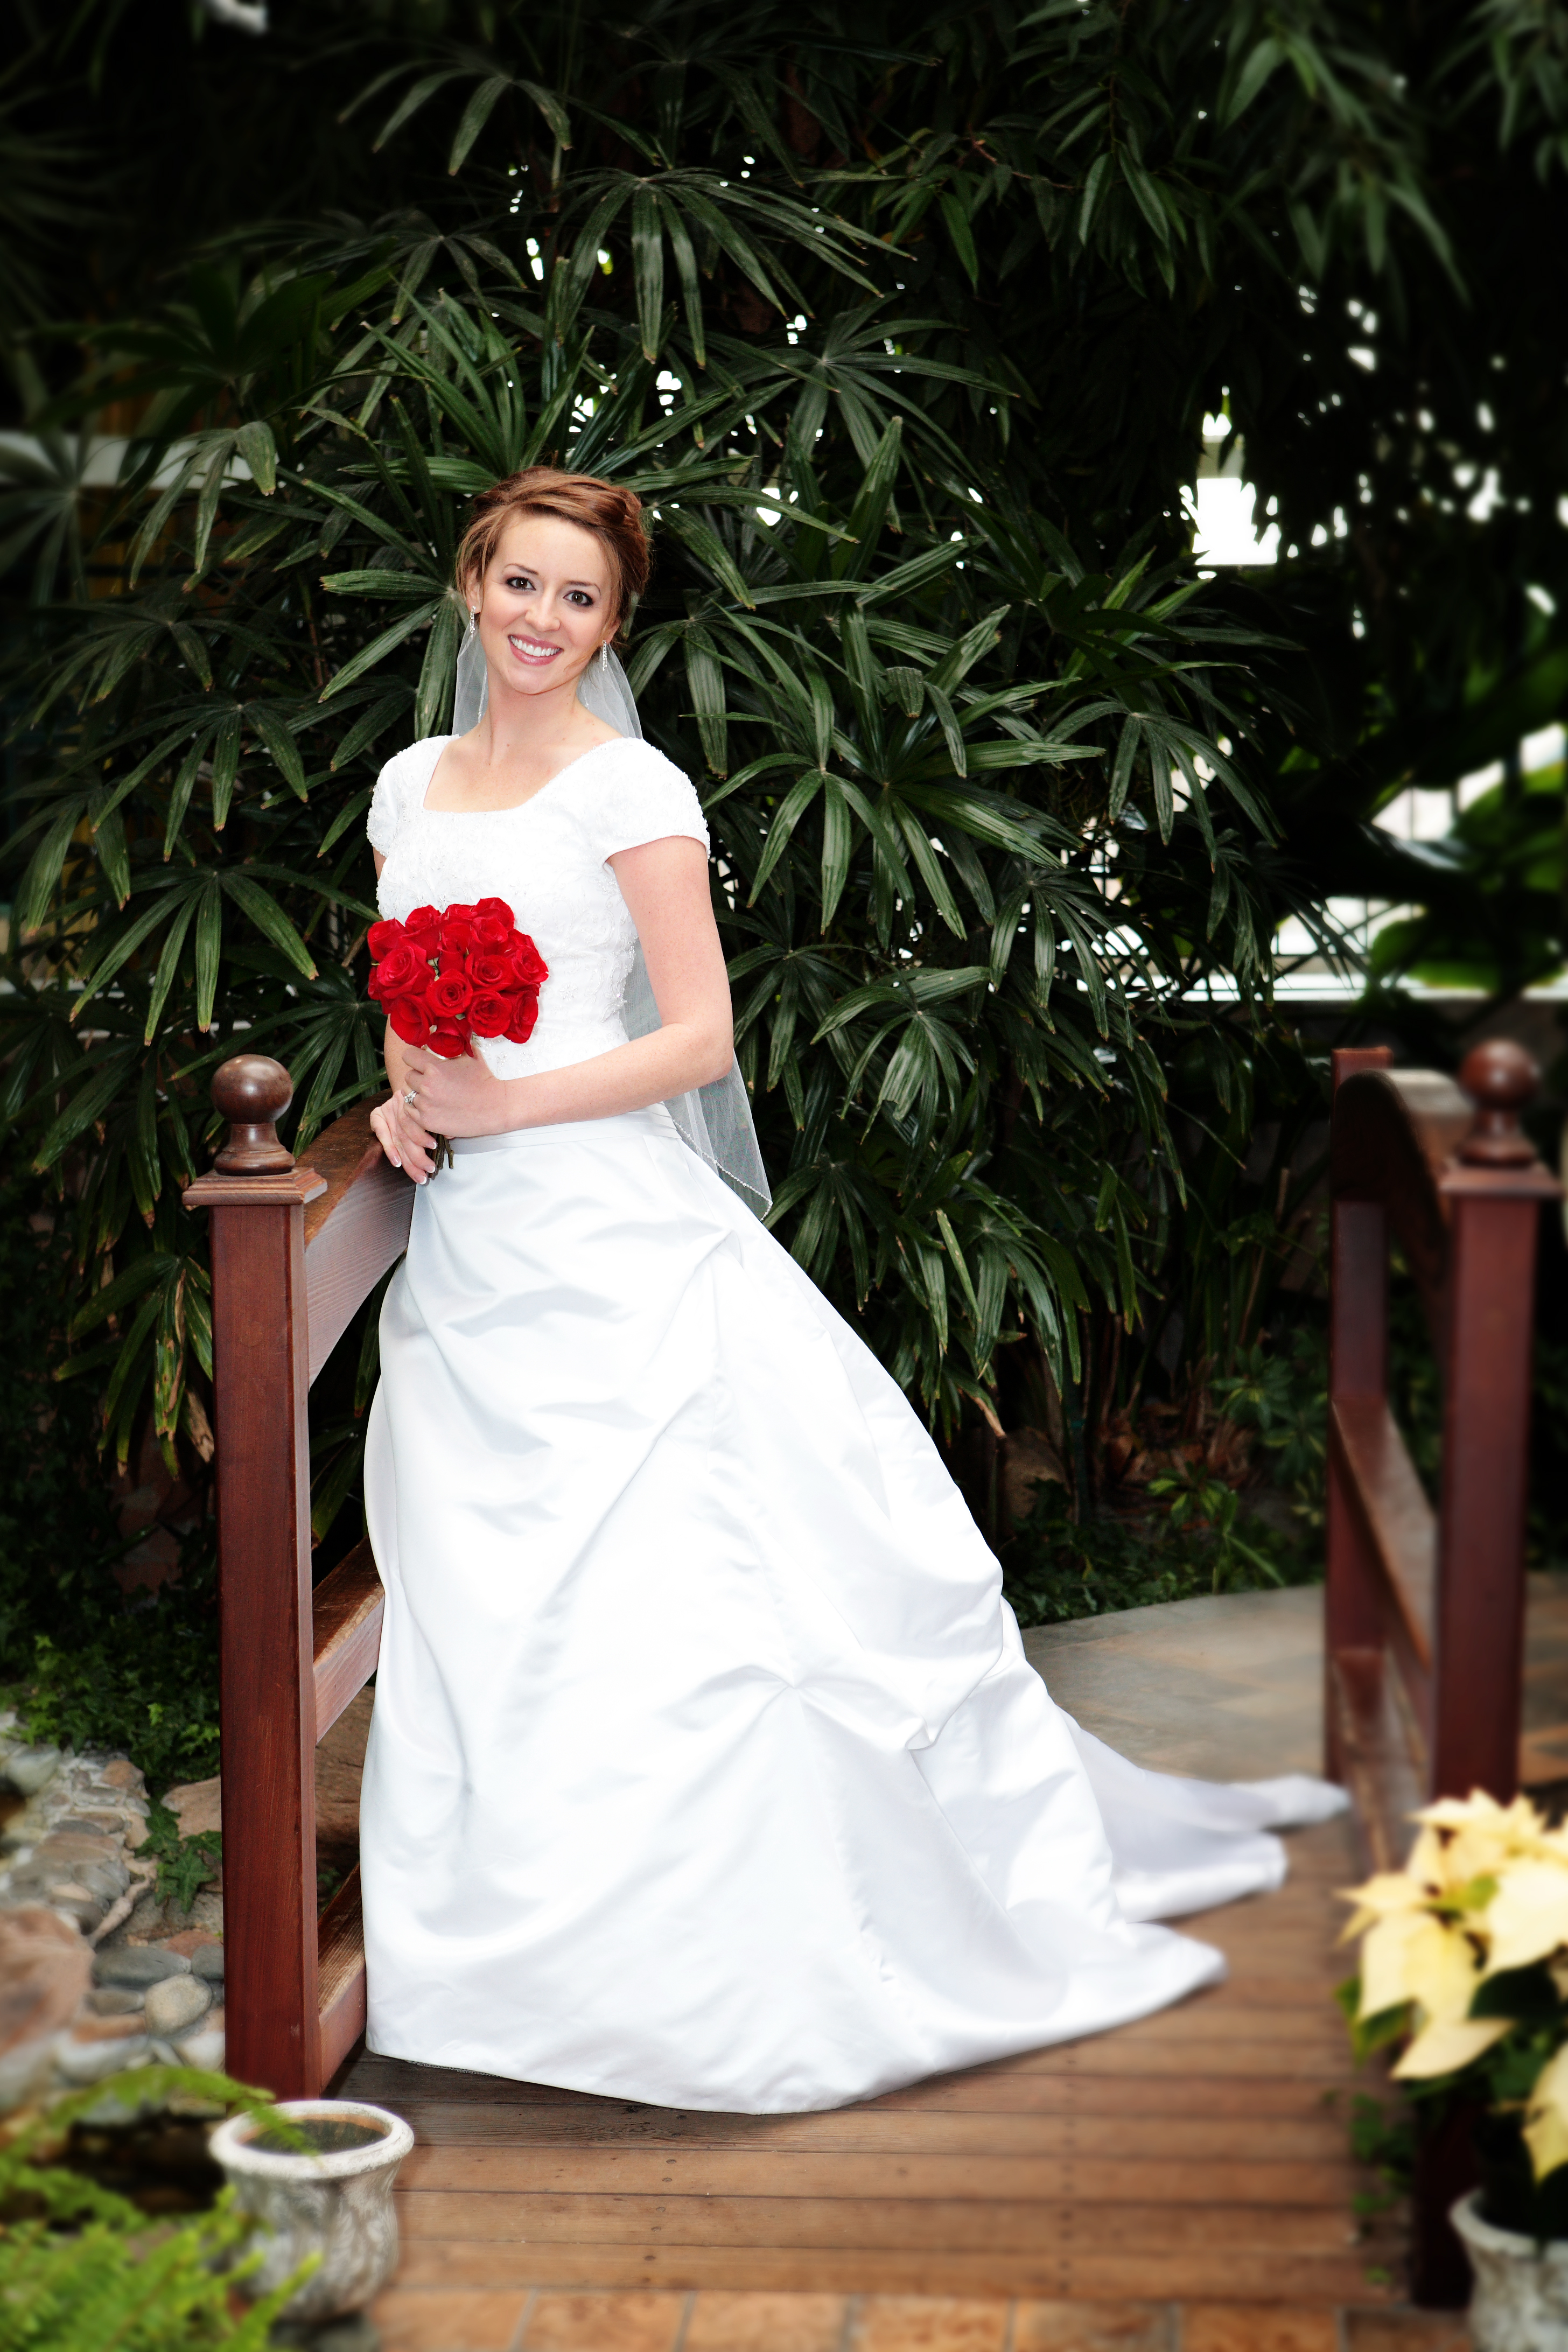 Continental cleaners dry cleaning services columbus ga for Wedding dress alterations columbus ohio